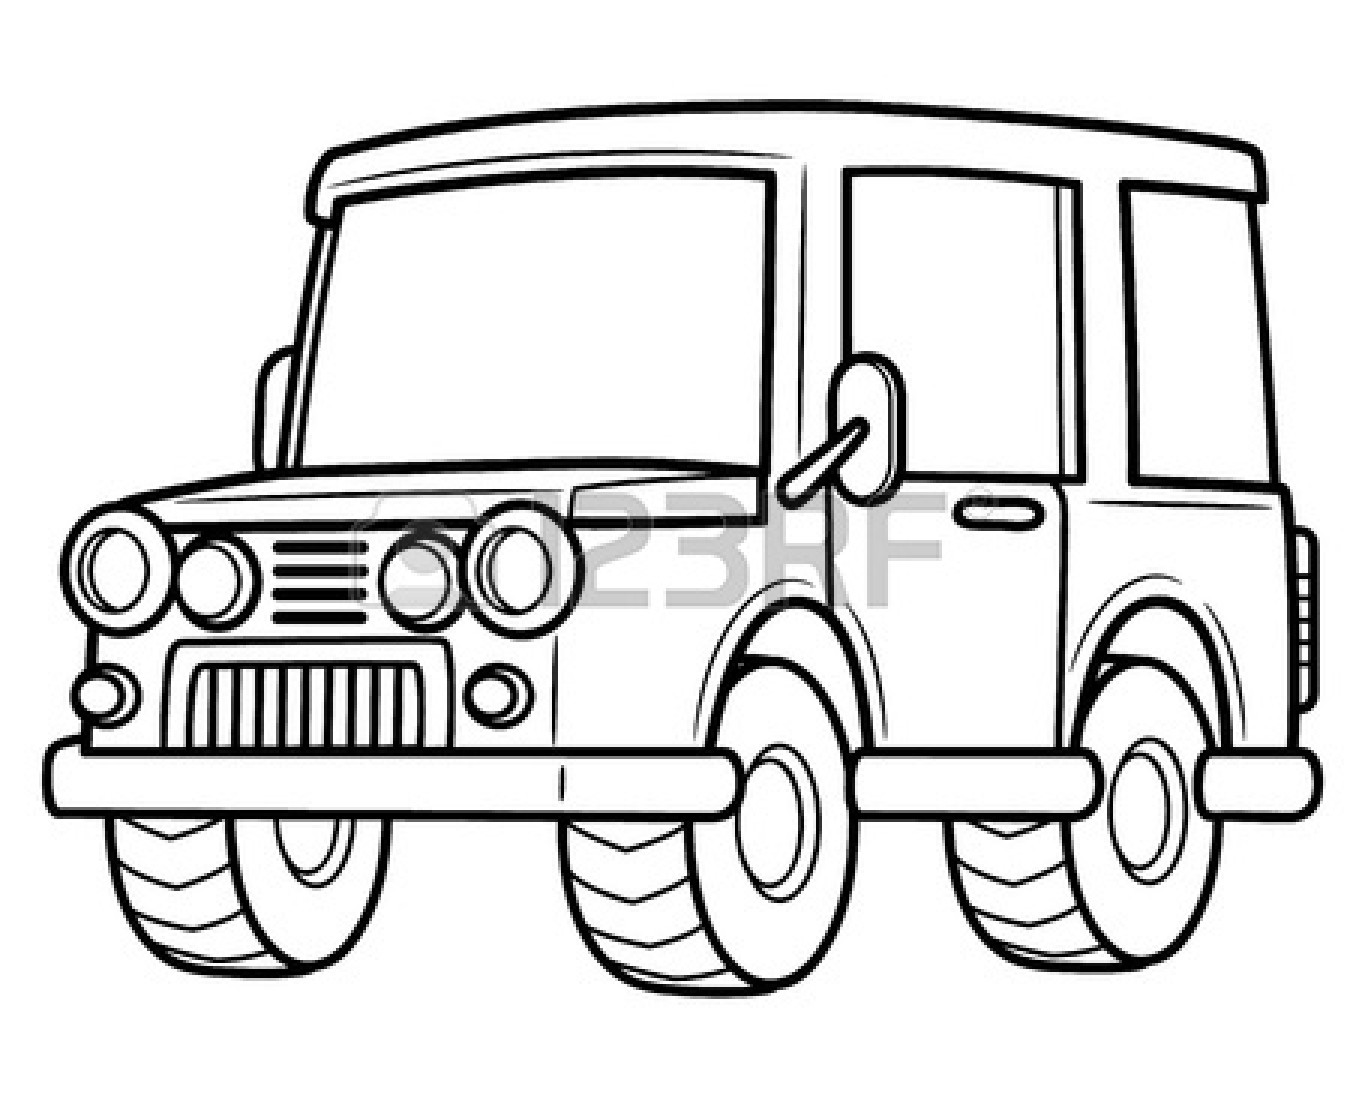 hight resolution of 1350x1098 pick up truck black and white clipart